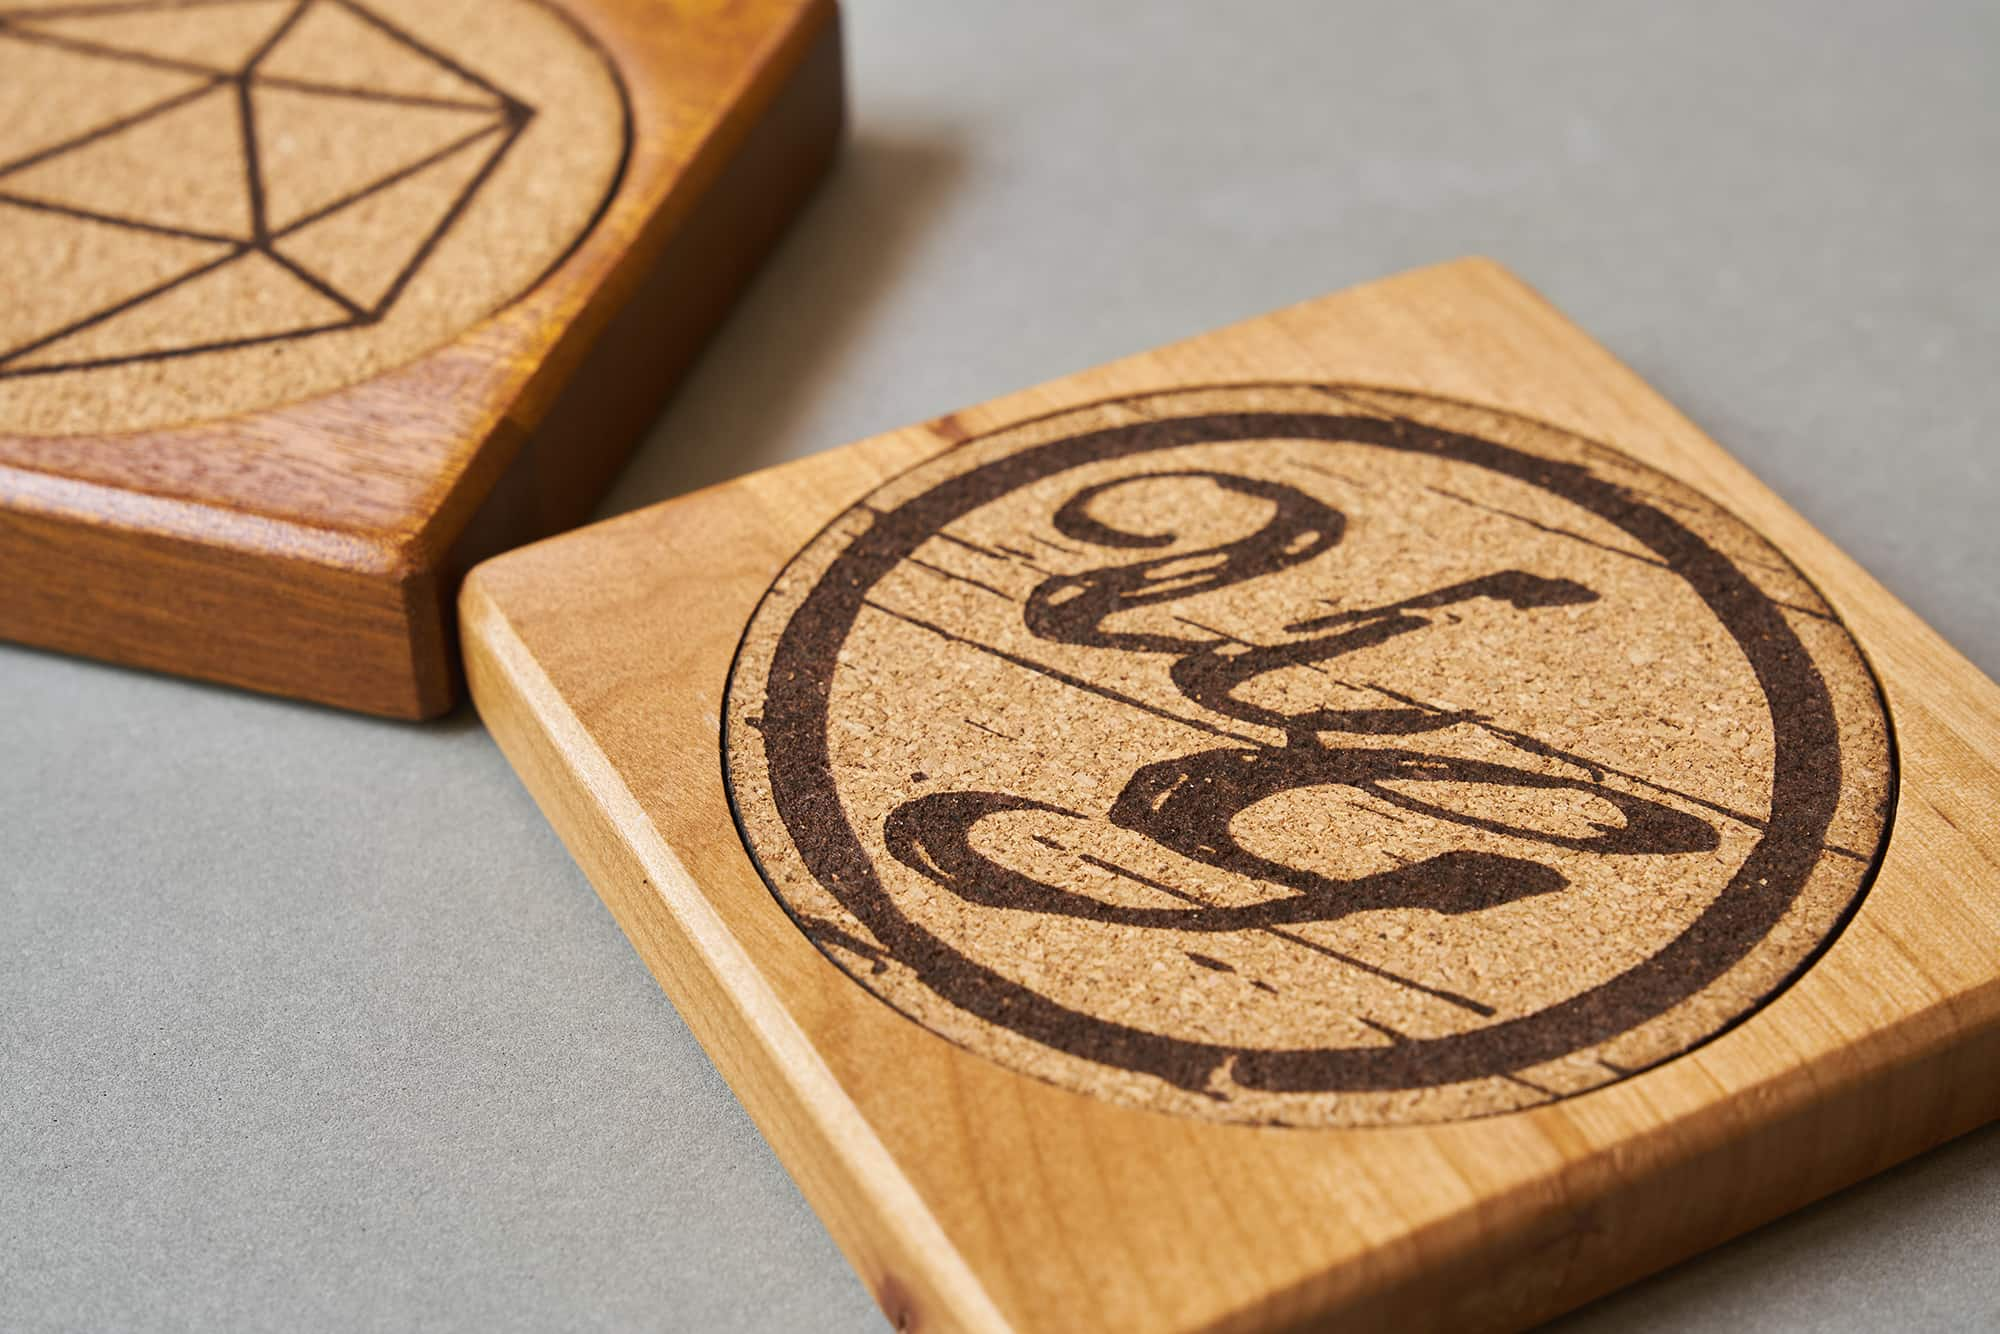 Cork surface inserts for custom hardwood coasters by Uniquely Geek